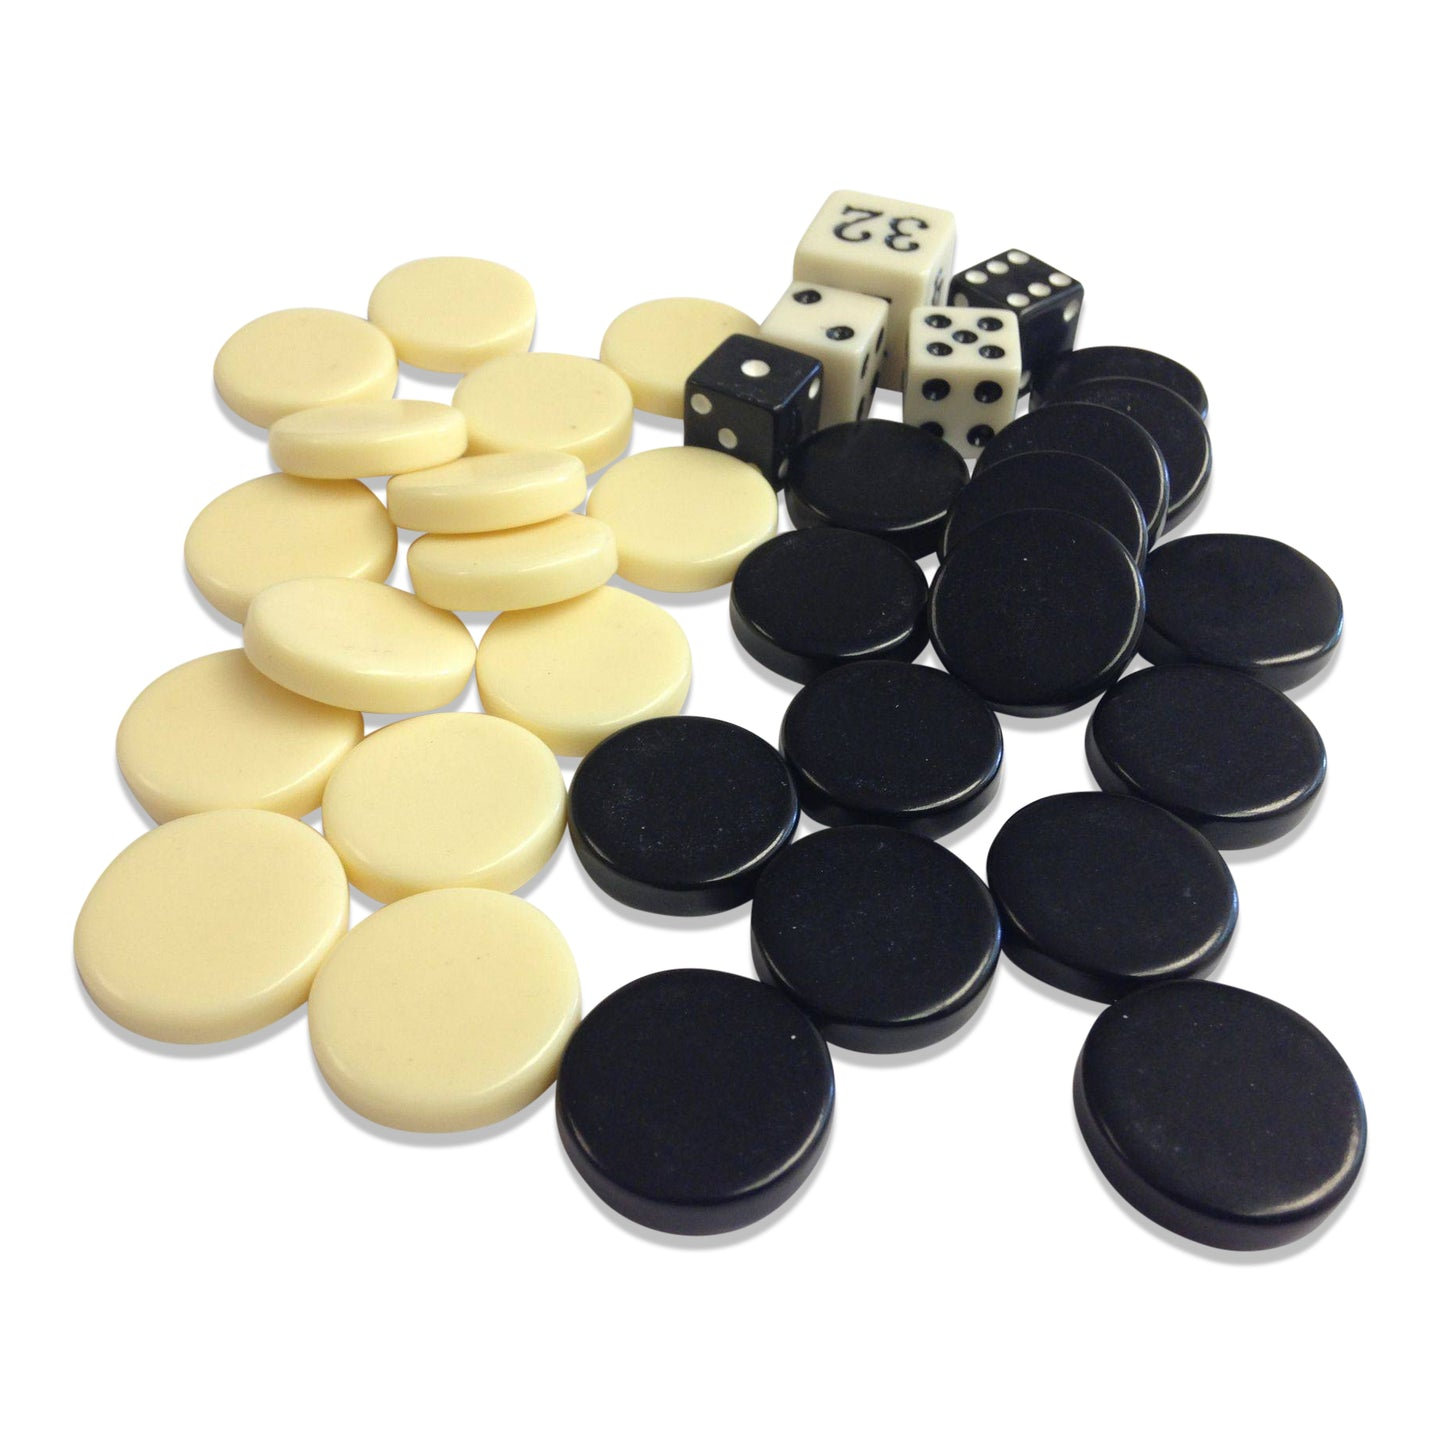 Replacement Stones | Small Size for Sondergut Backgammon Roll-up Travel Game | Free Shipping